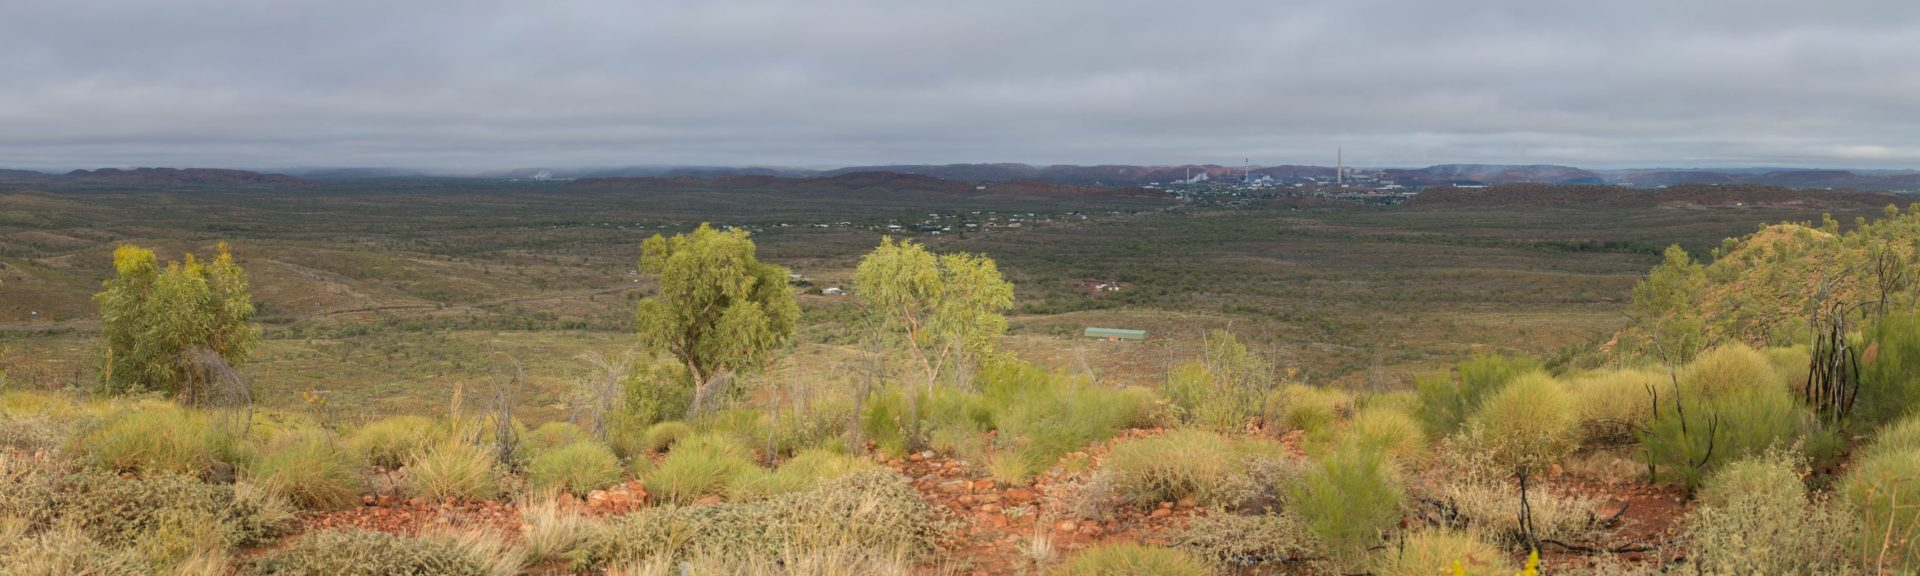 Mount Isa and surrounding region